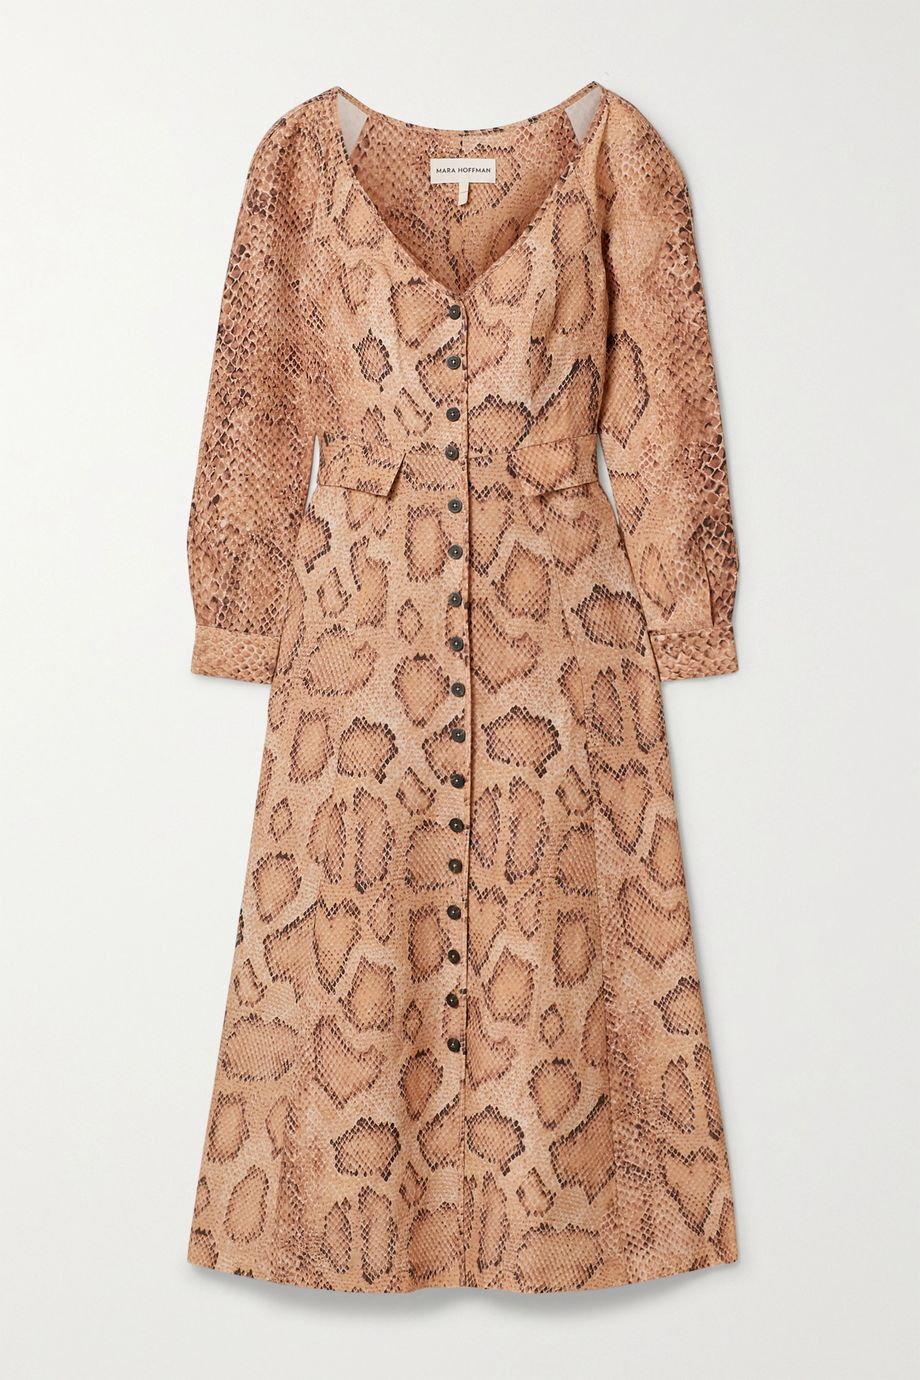 Mara Hoffman + NET SUSTAIN Silvana snake-print Tencel and linen-blend midi dress